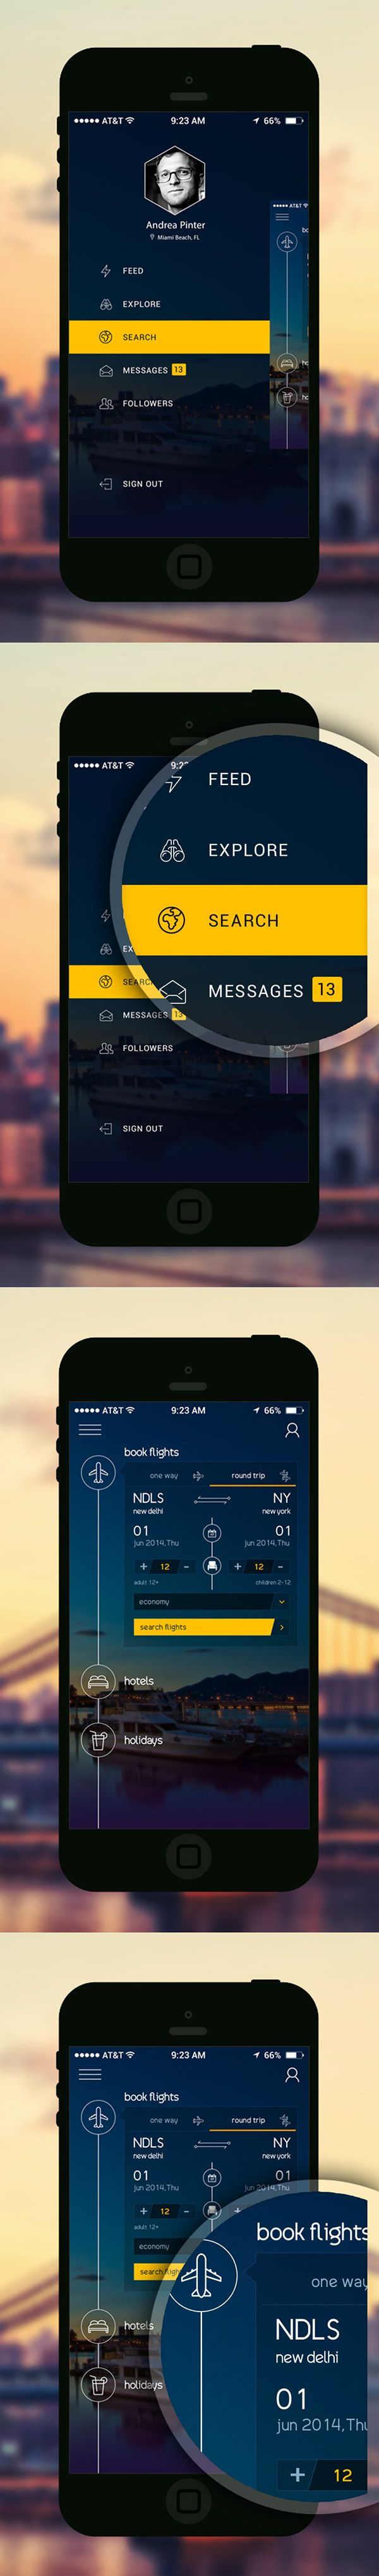 Booking App According to iPhone 6+ on Behance #app #booking #design #ux #ui #mobile